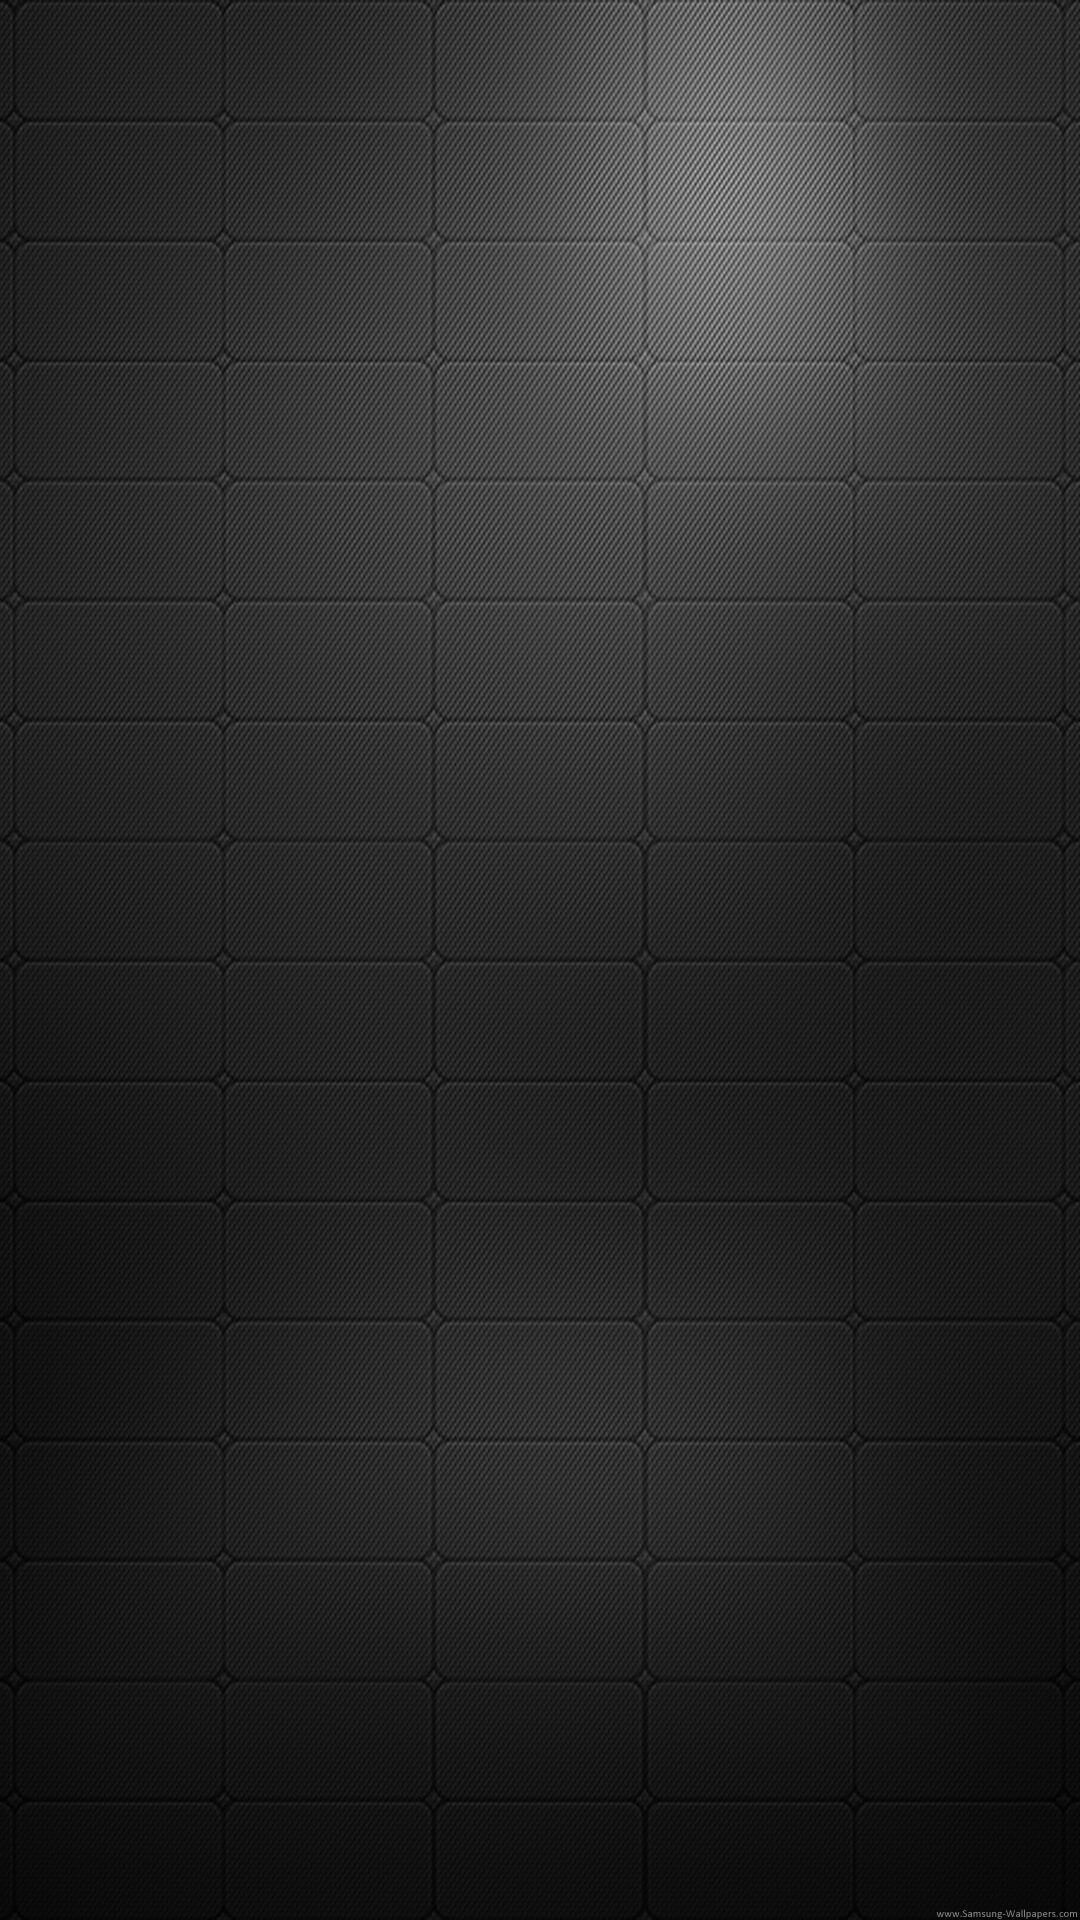 Black Hd Android Mobile Full Screen Wallpapers Wallpaper Cave